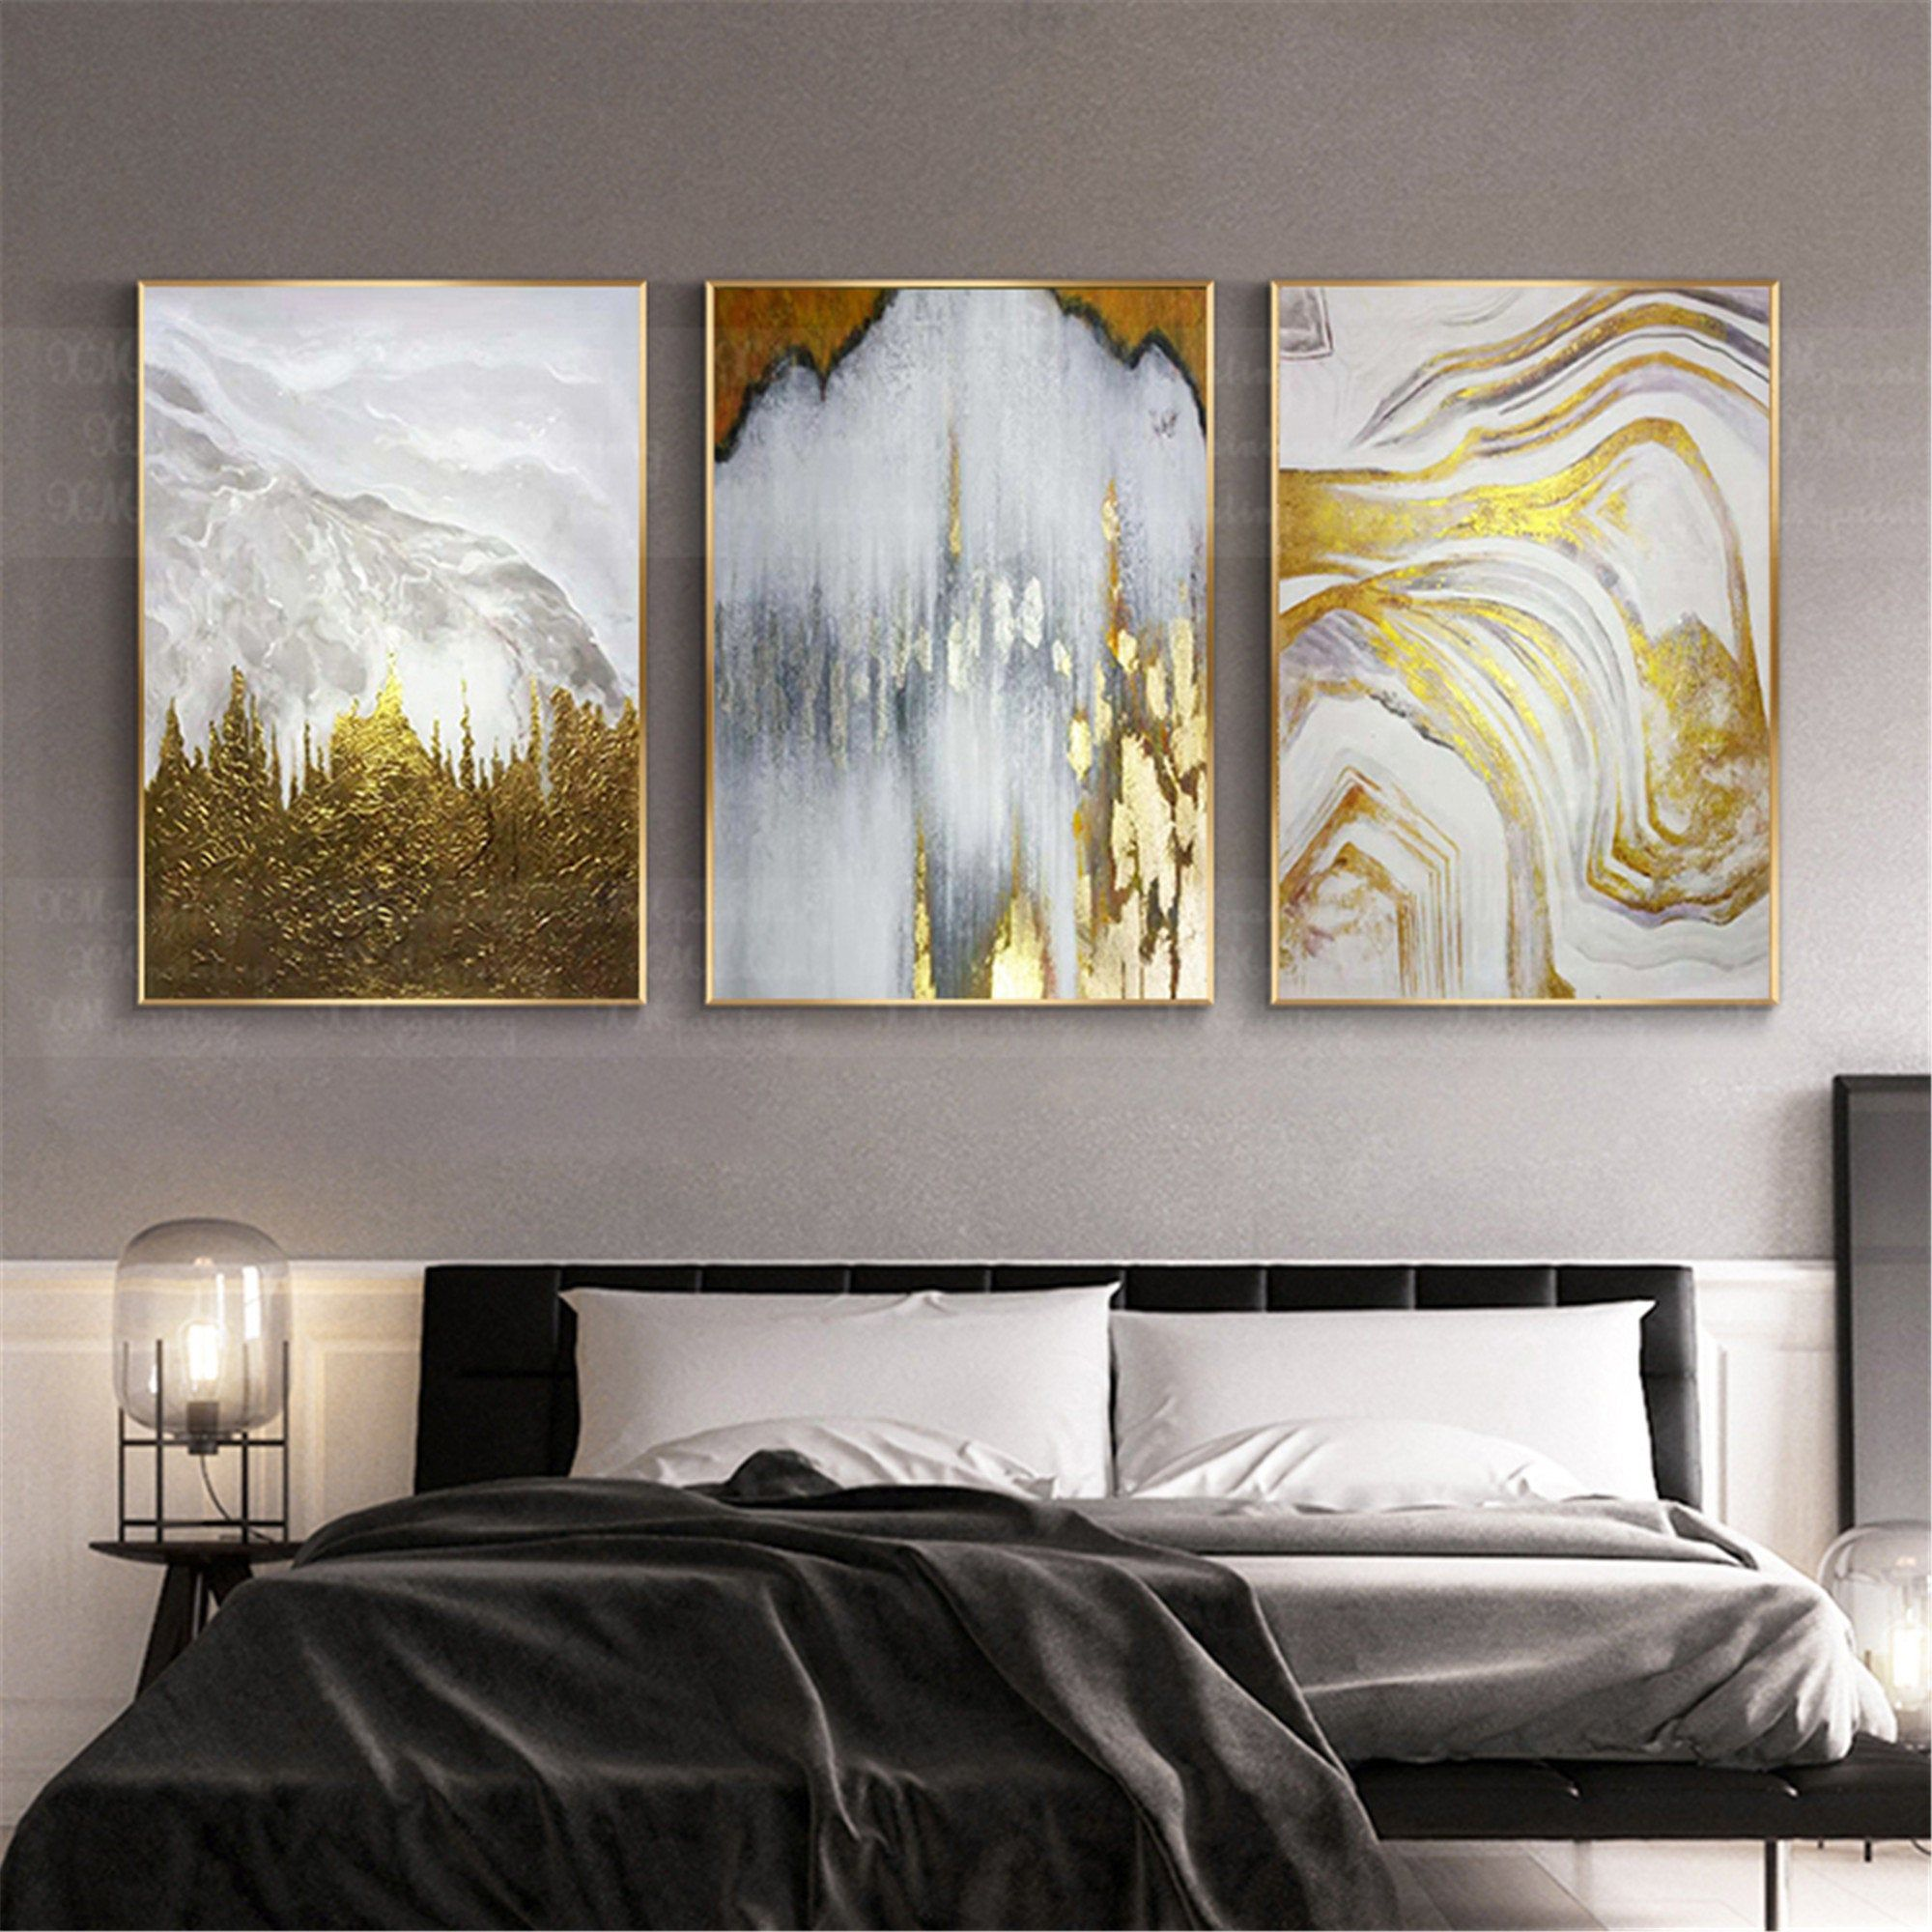 3 Pieces Gold Leaf Abstract Painting